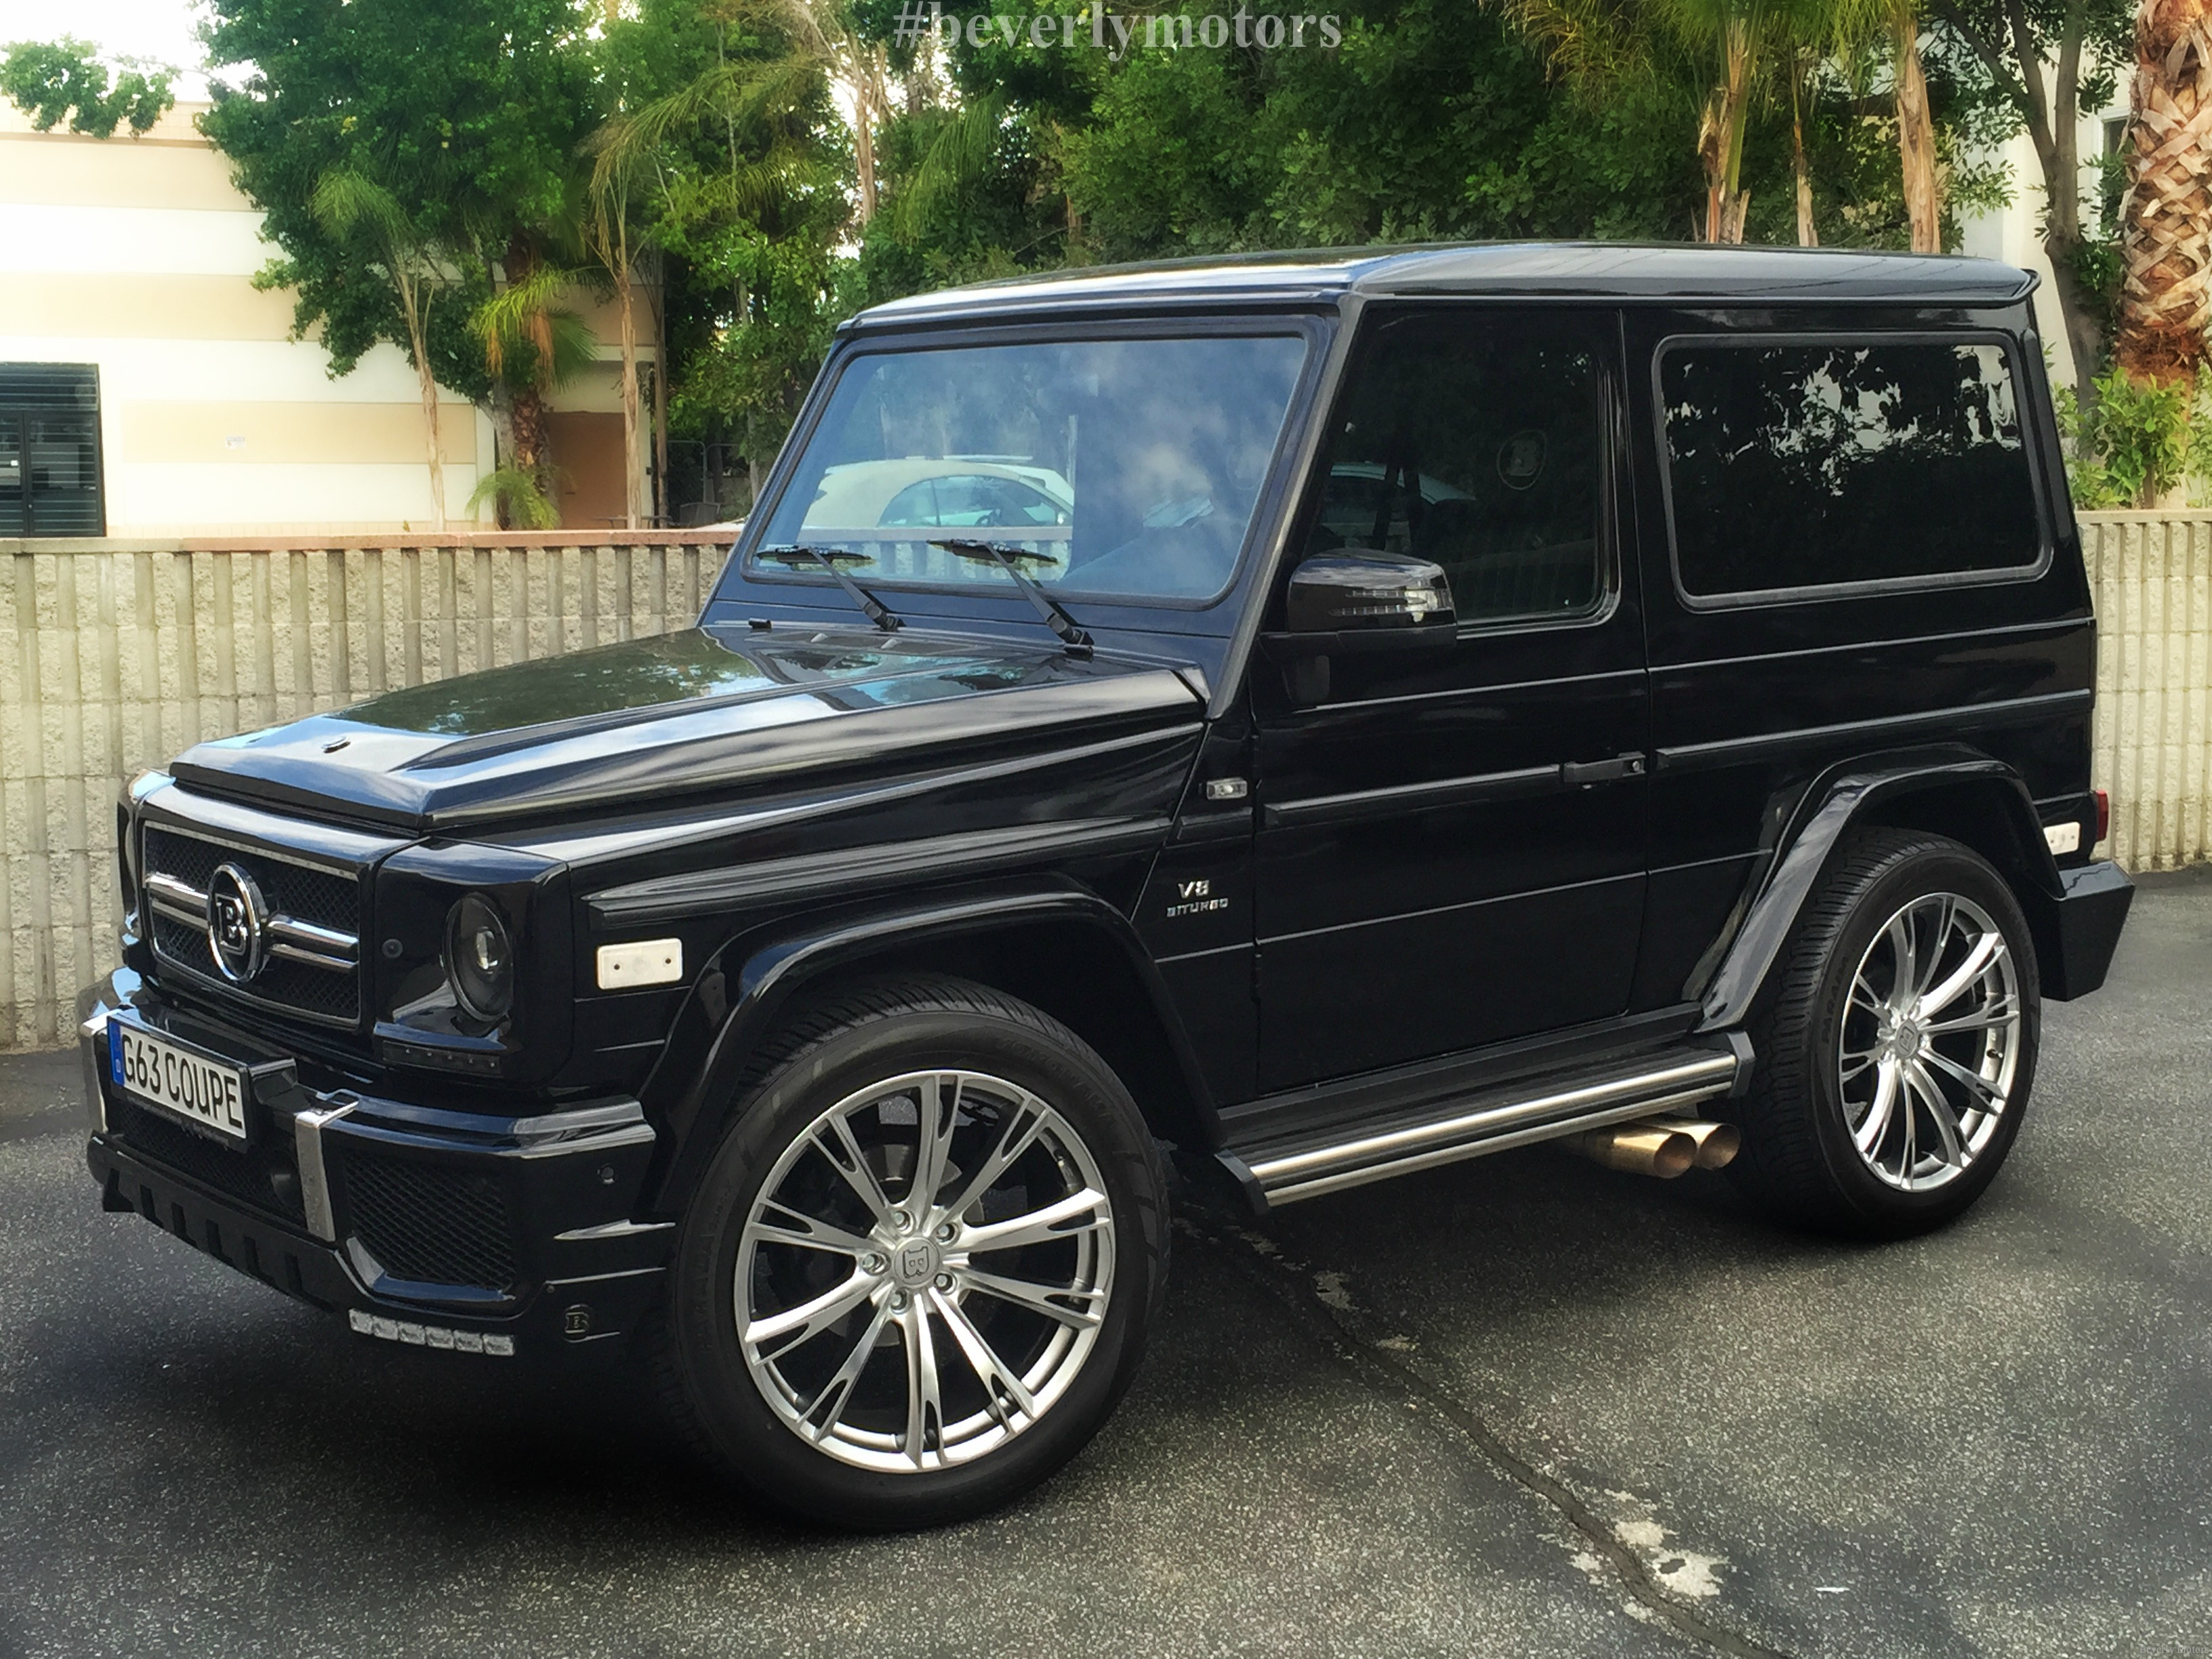 Beverly motors inc glendale auto leasing and sales new for Mercedes benz g class cabriolet for sale